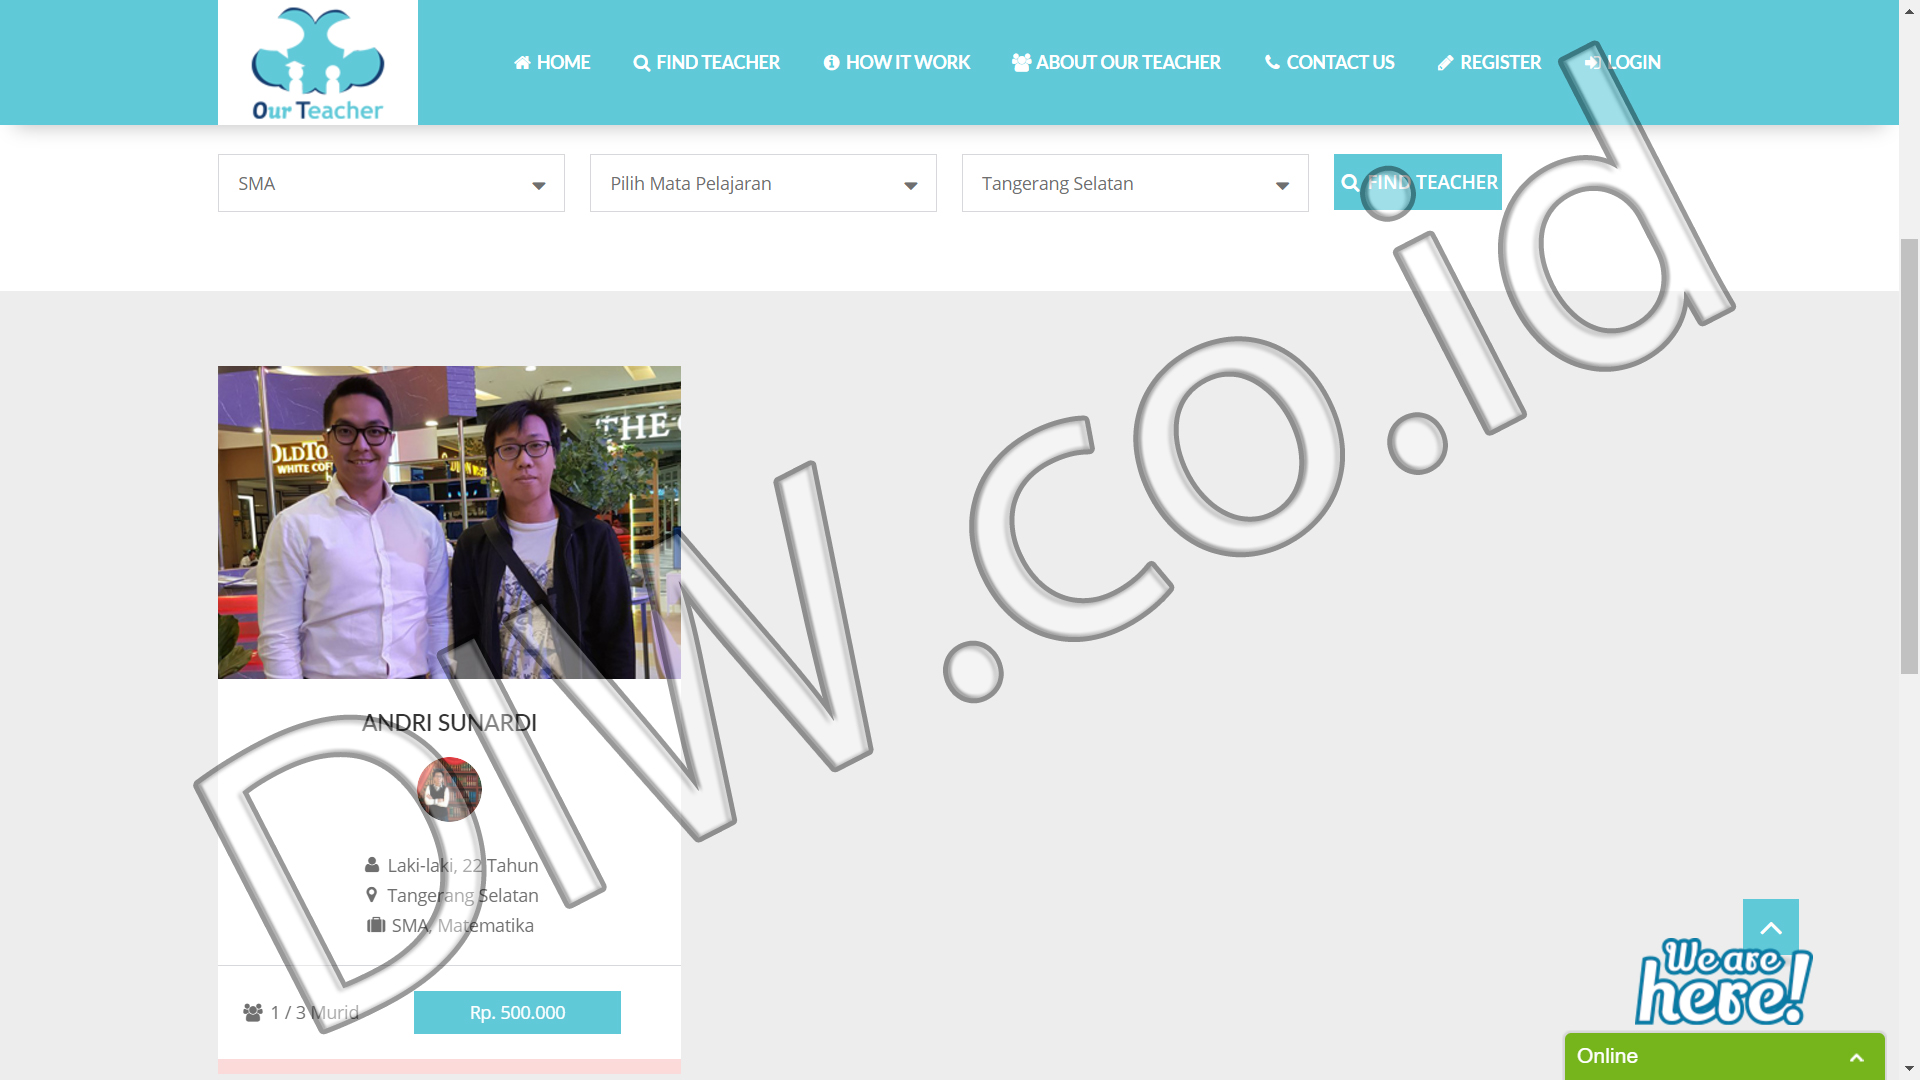 Portfolio 3 - Our Teacher - Andri Sunardi - Freelancer - Web Developer - CEO DIW.co.id